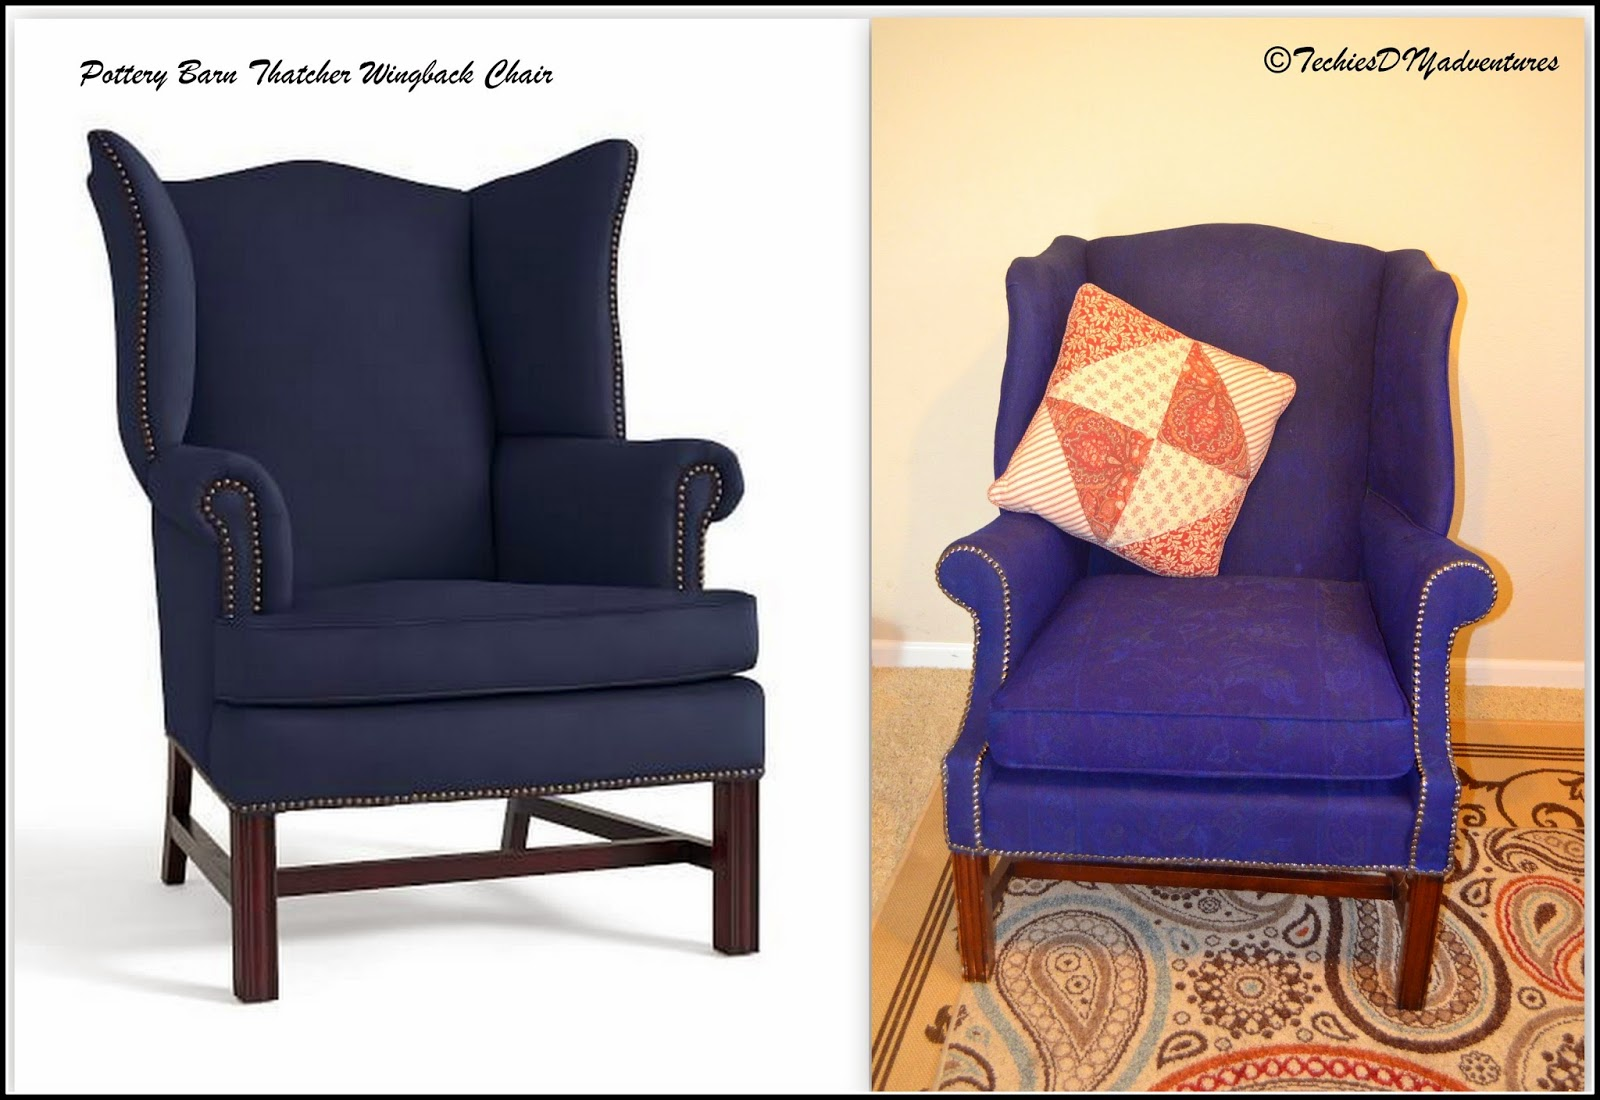 Pottery Barn Thacther wingback Chair knock off